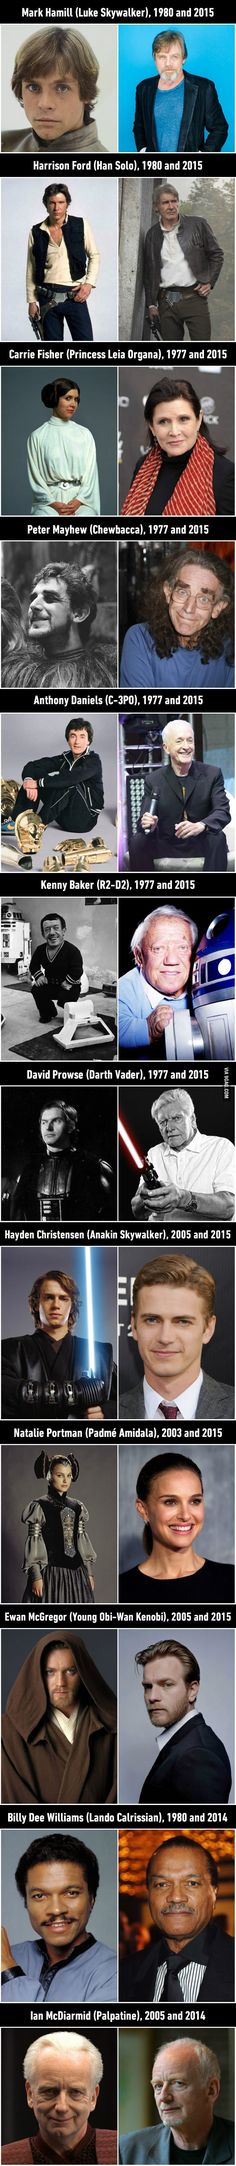 Star Wars Characters That We Love, Then and Now